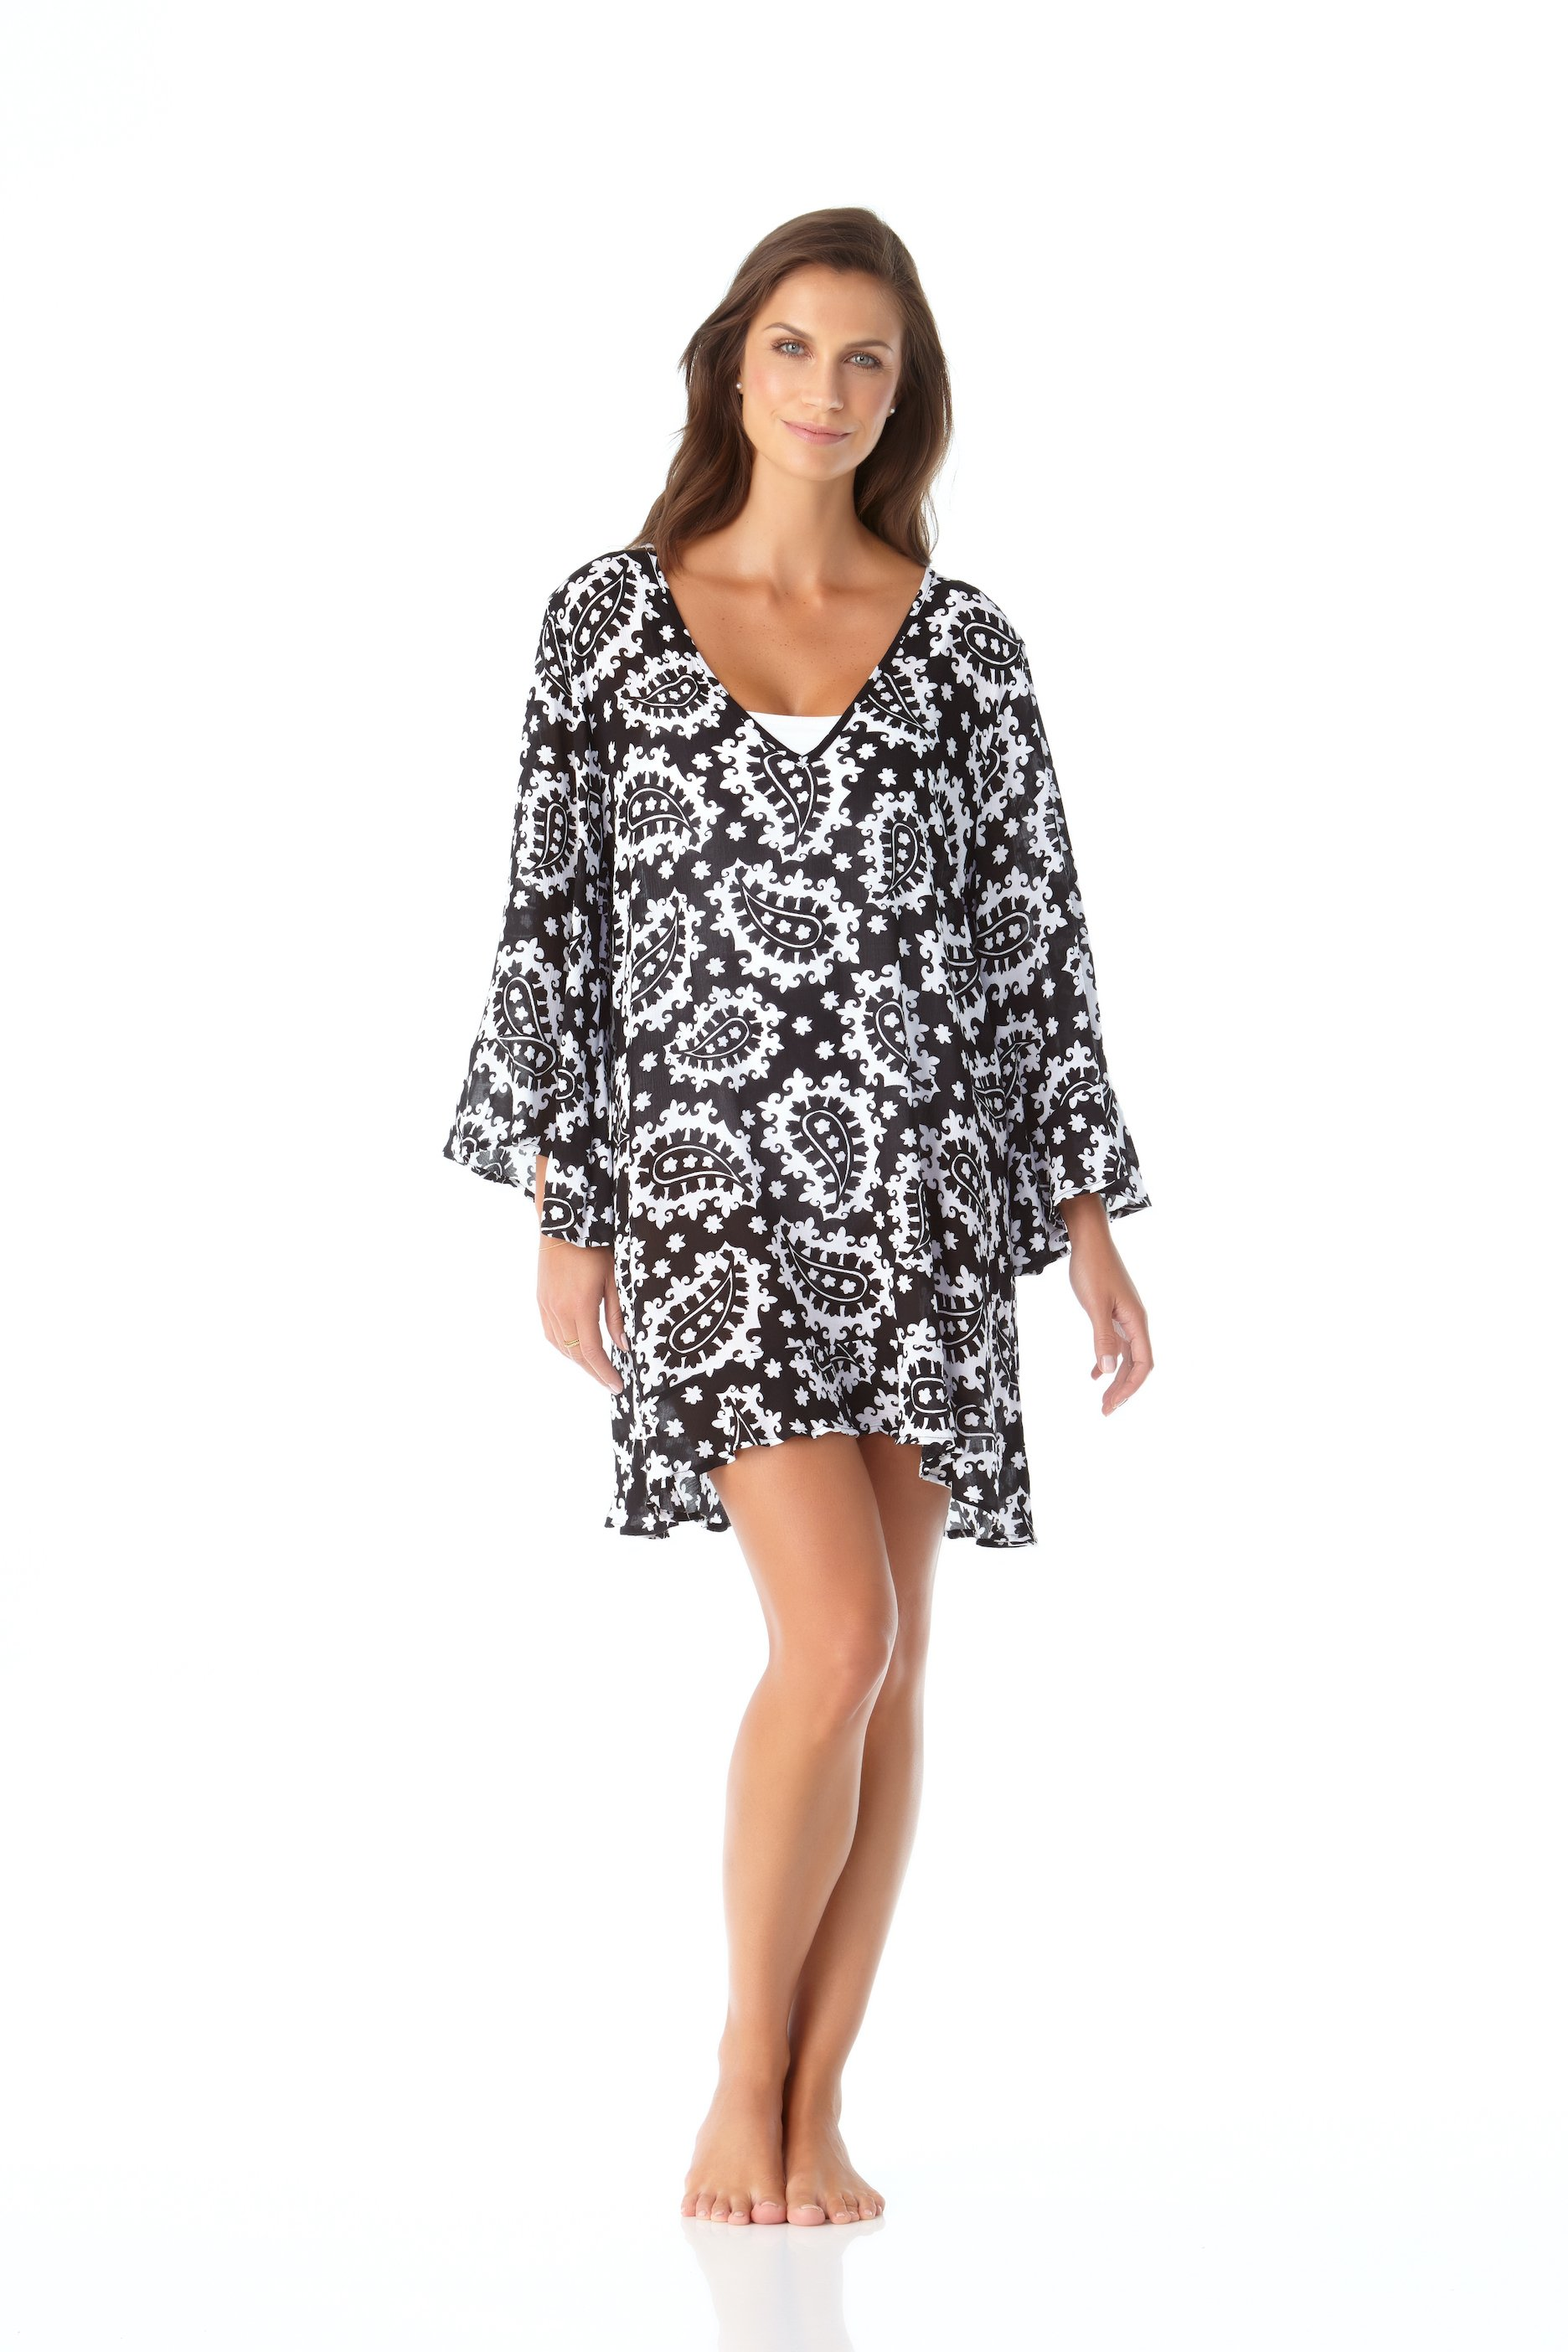 PRE ORDER Anne Cole® Riveria Paisley Flounce Sleeve Tunic Swimsuit Cover-Up -Black/White - Front